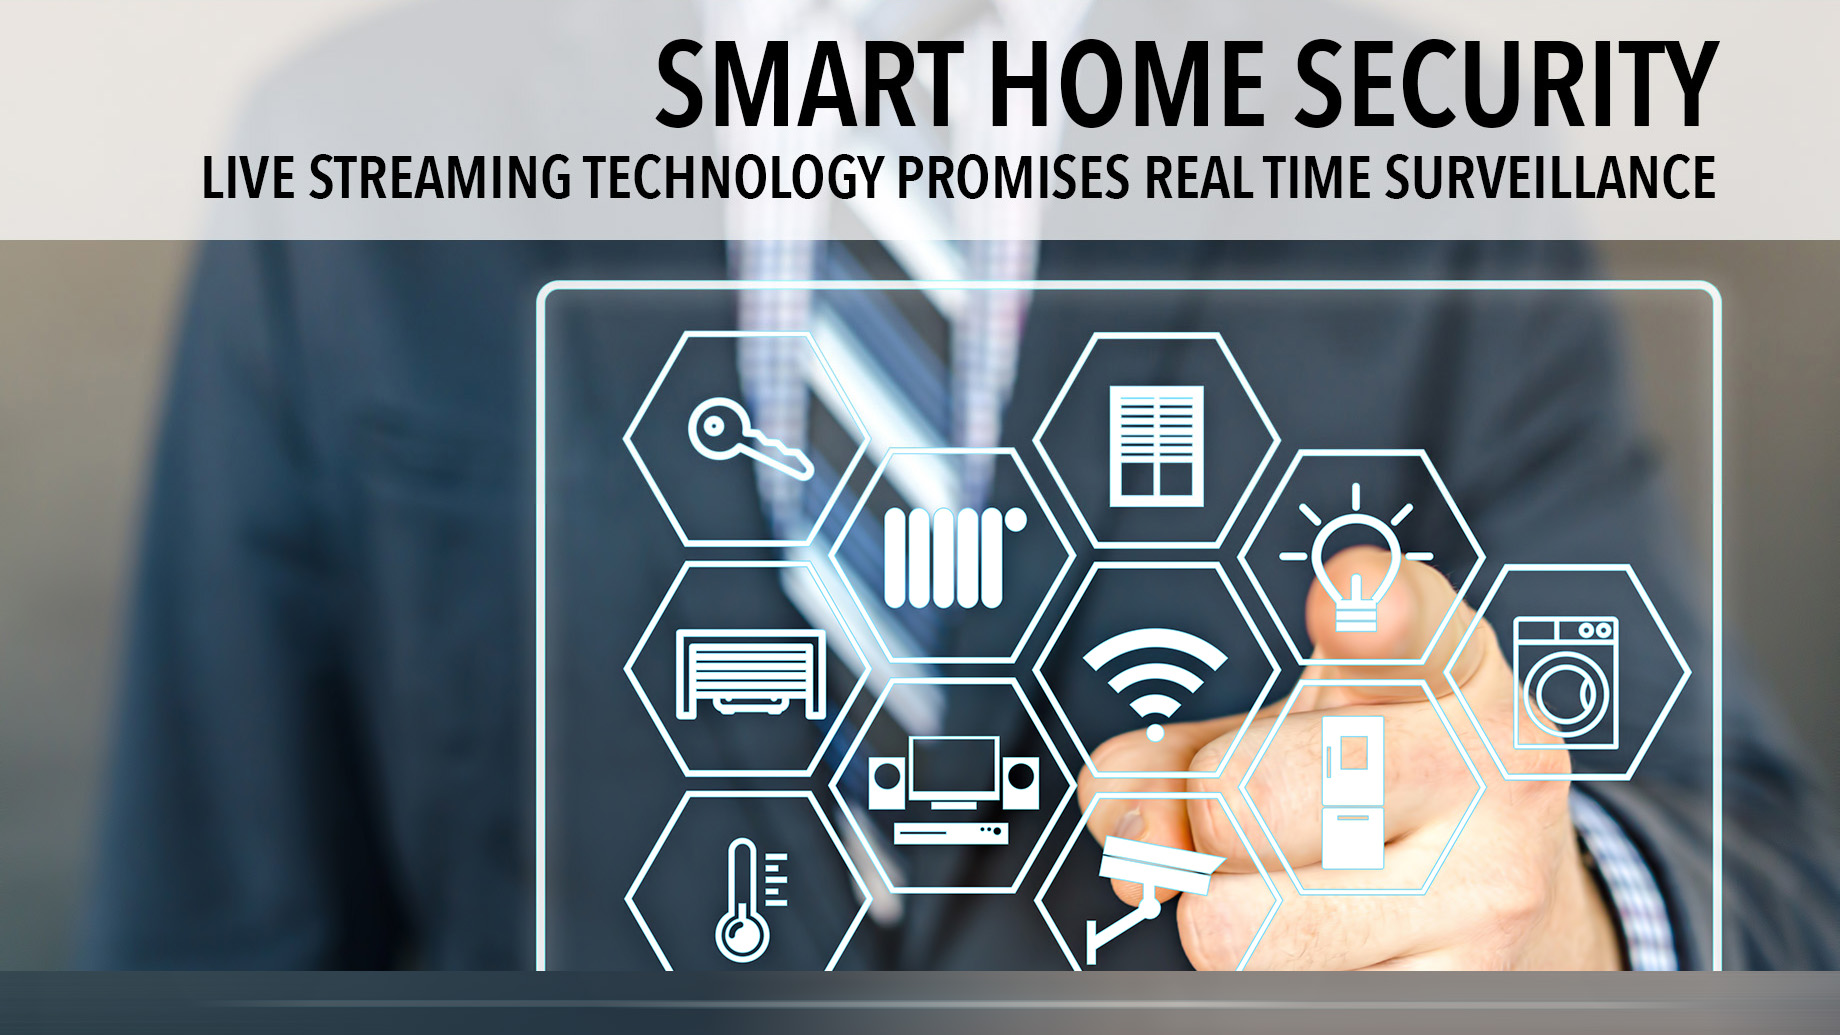 Smart Home Security - Live Streaming Technology Promises Real Time Surveillance